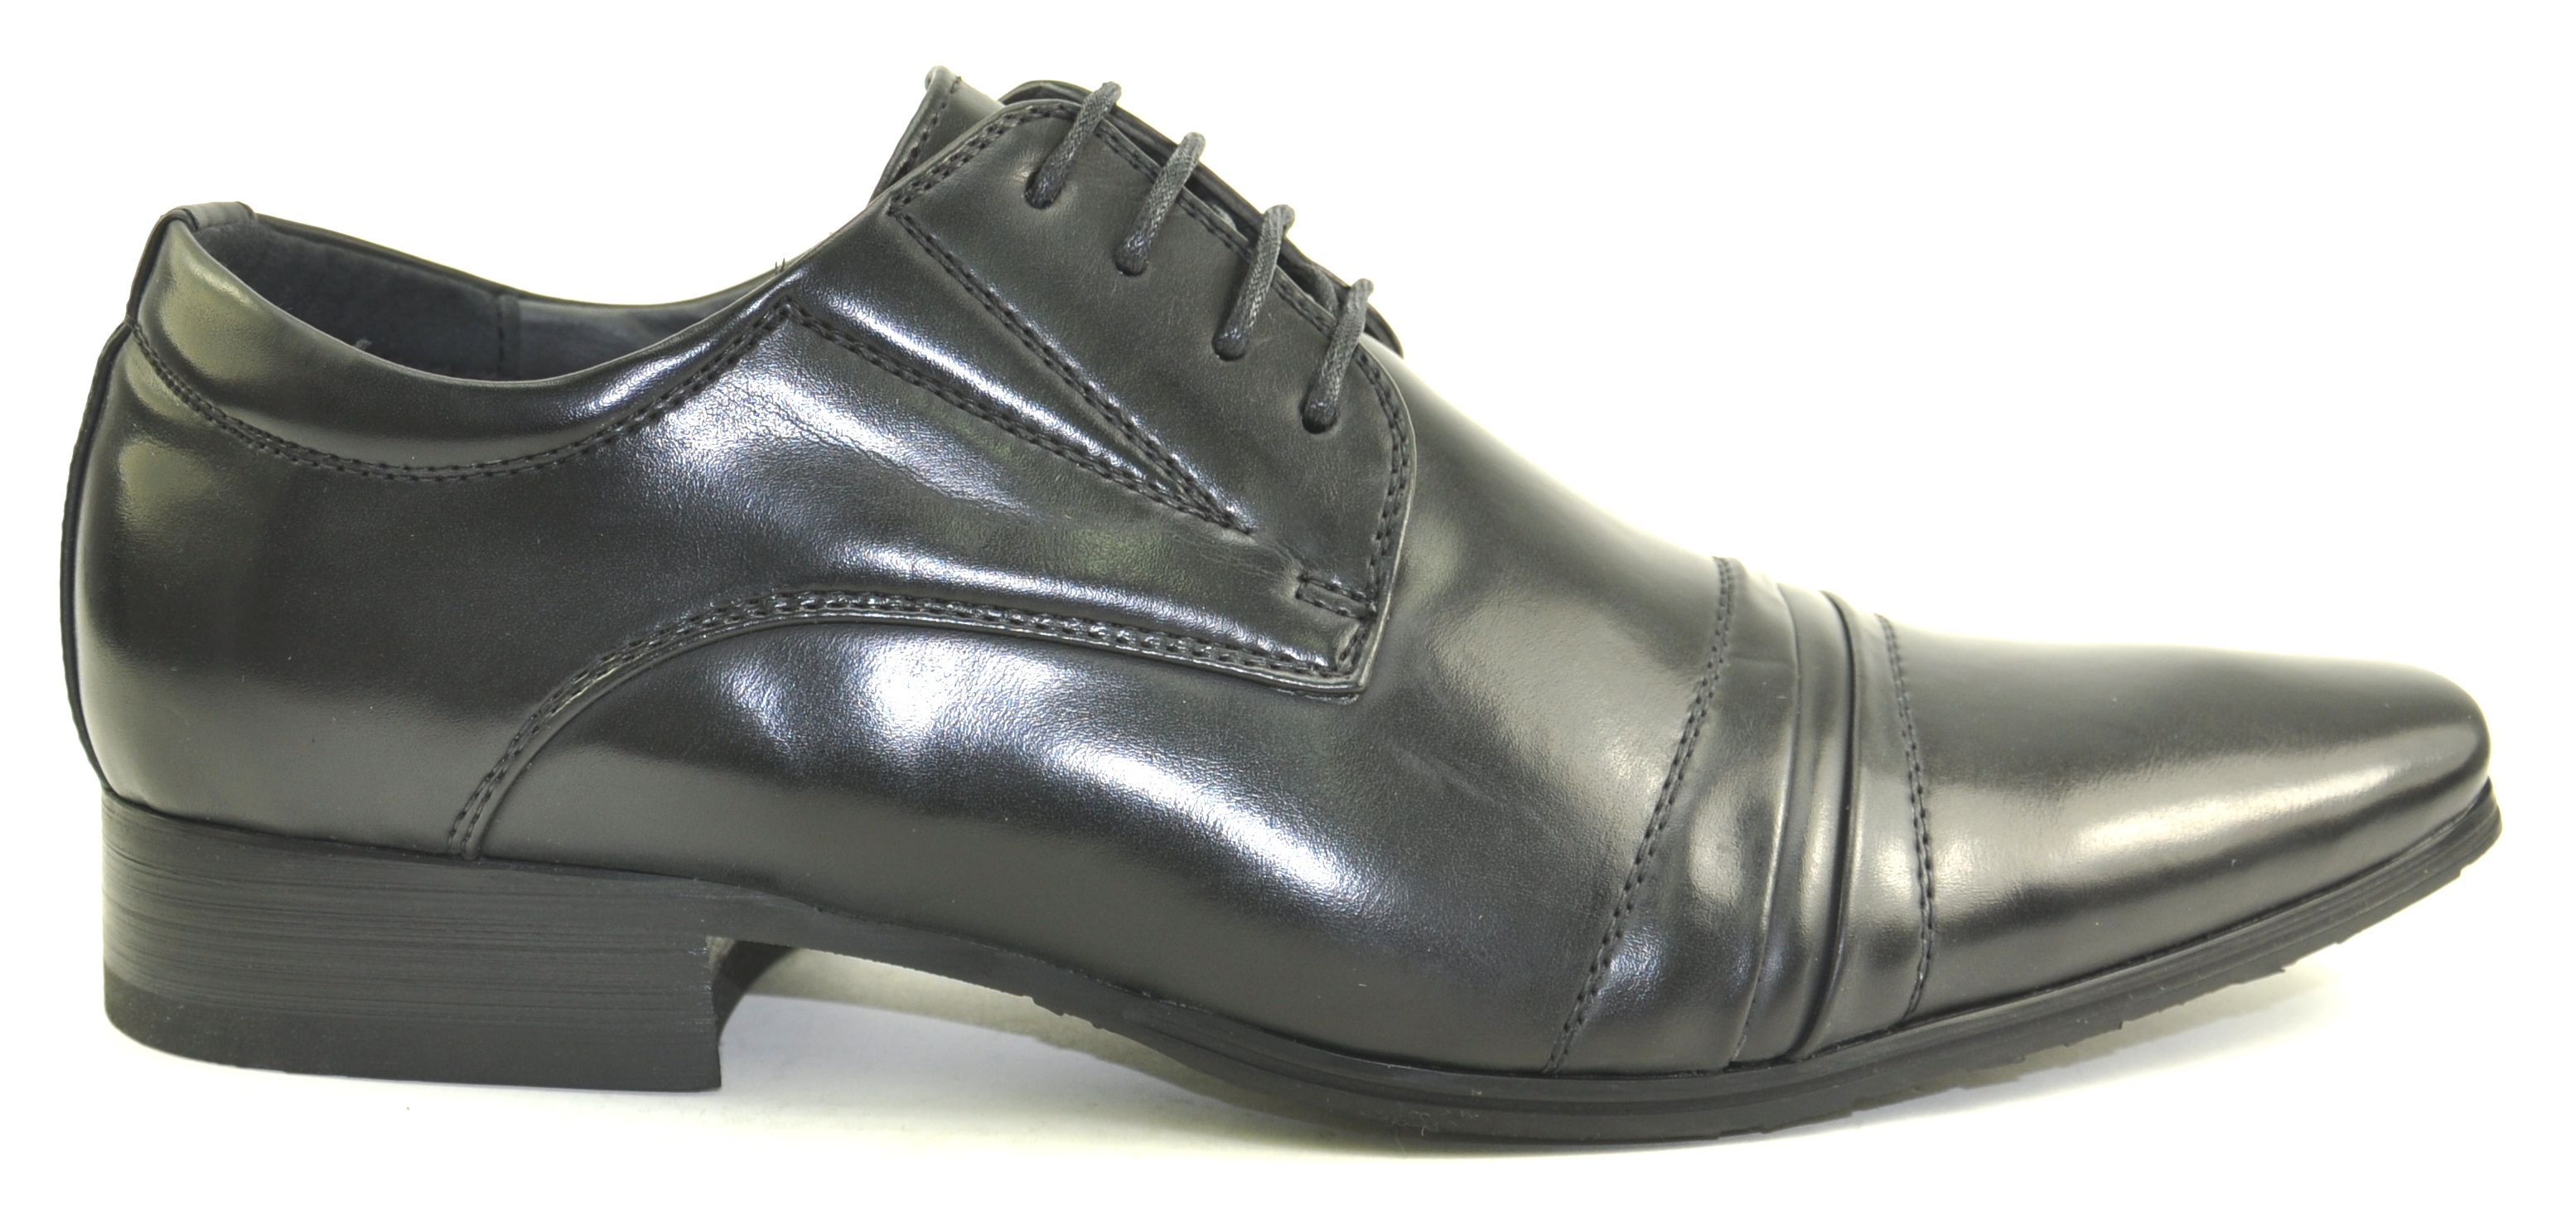 NEW MENS BLACK PATENT LACE UP FLAT FORMAL EVENING SMART OFFICE SHOES SIZE 7-13 | EBay